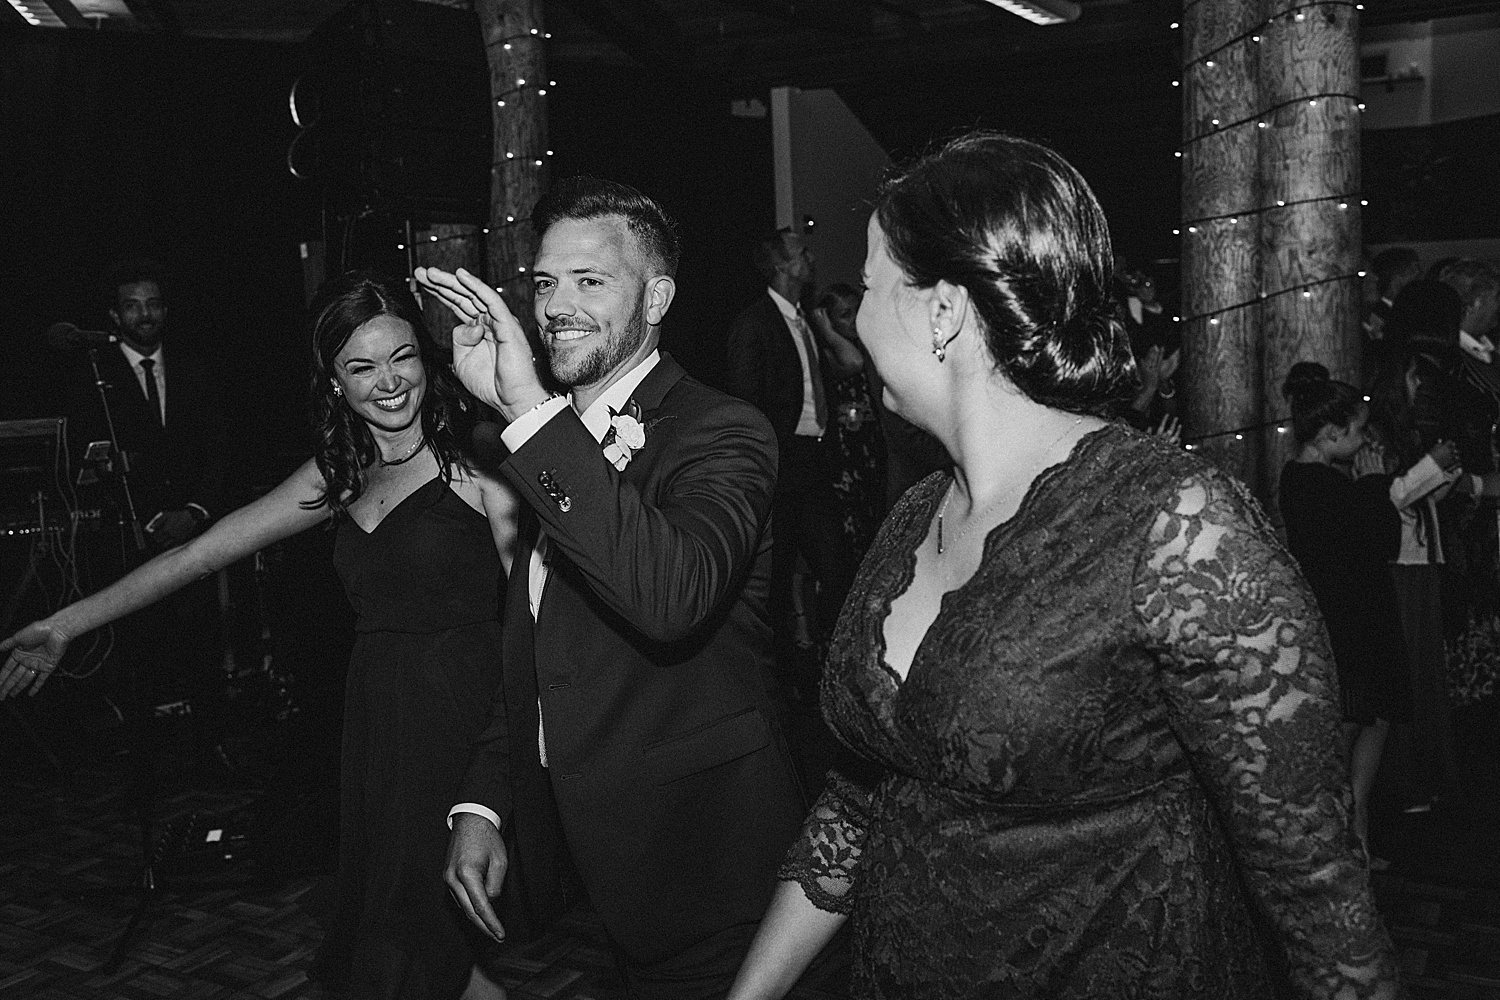 candid of Wedding guests celebrating